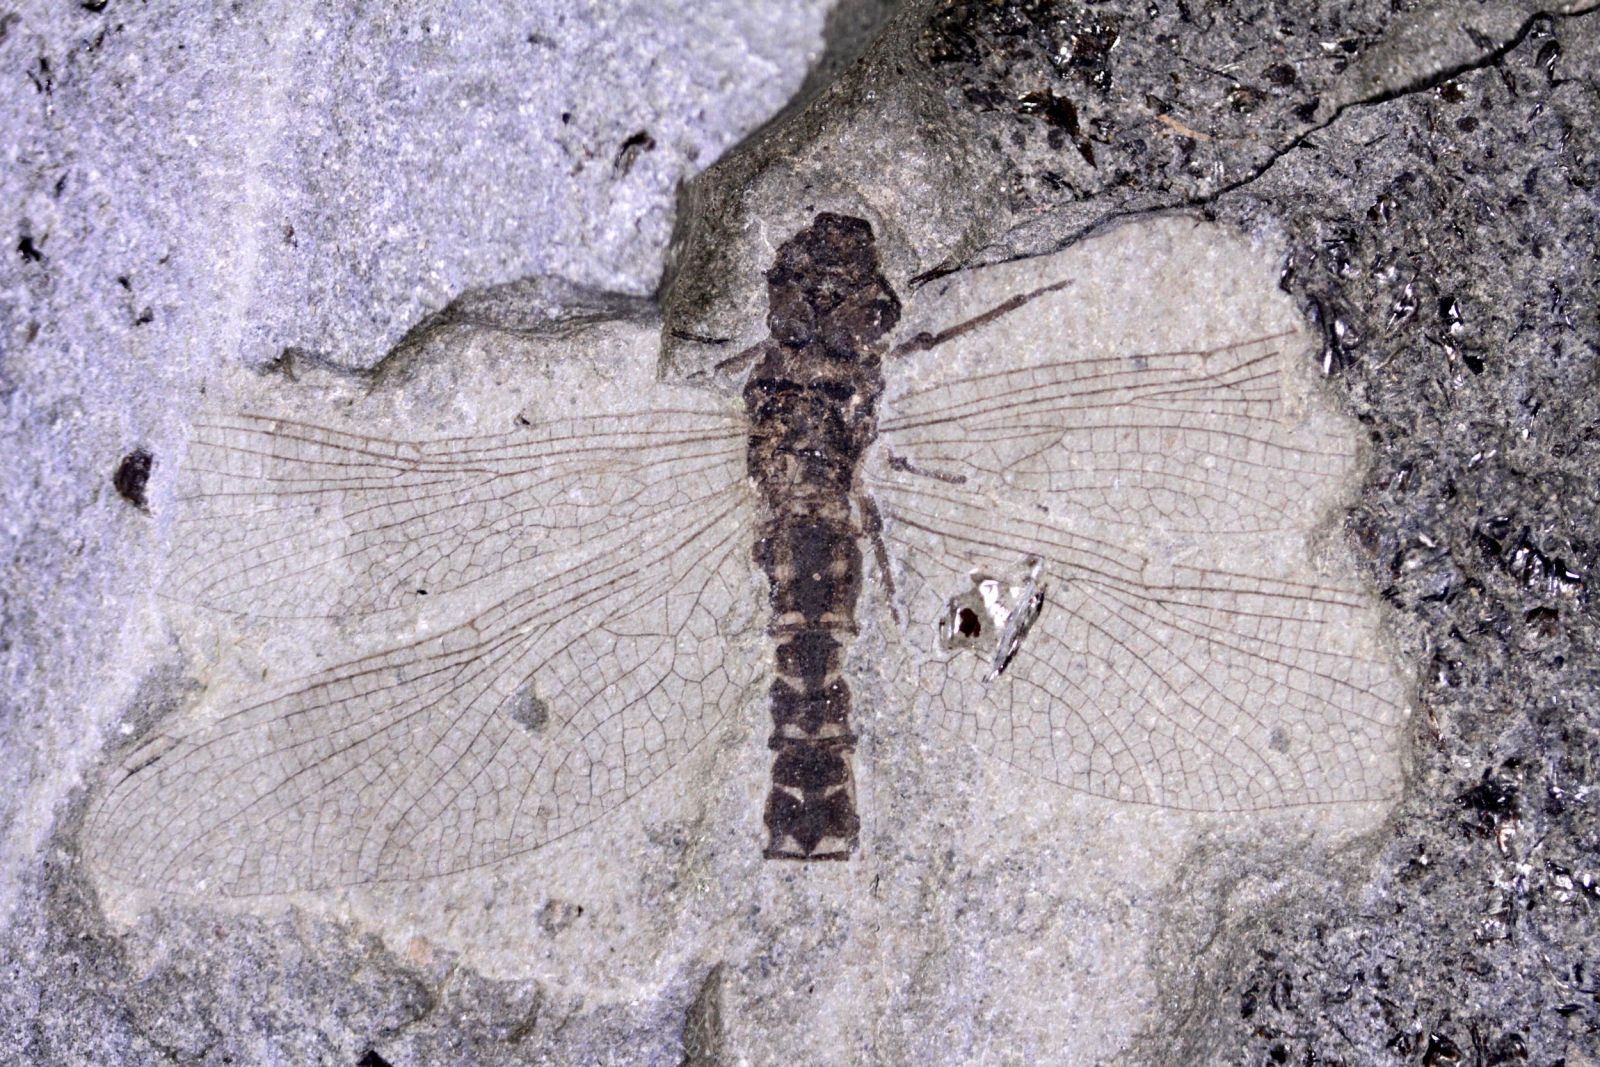 Dragonfly - Members Gallery - The Fossil Forum